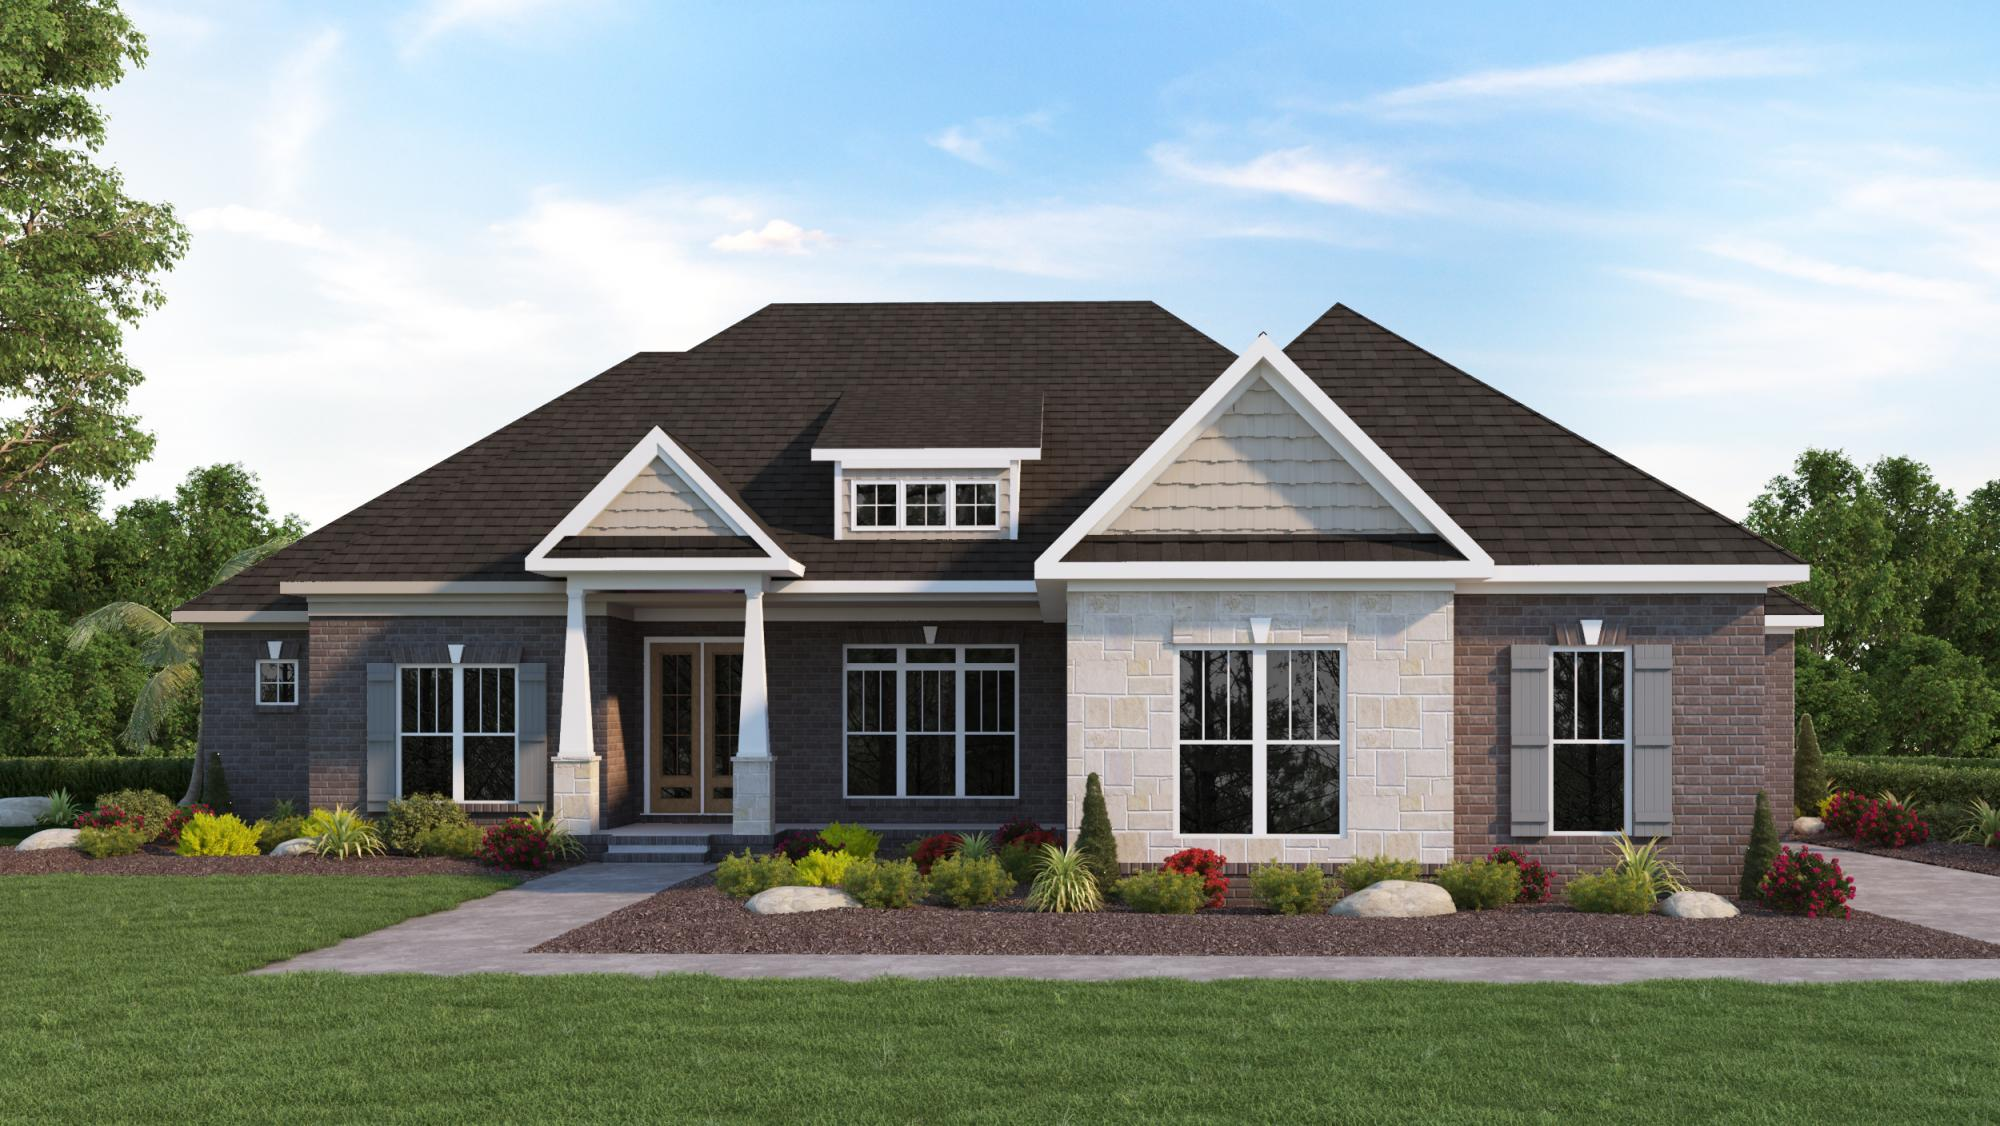 Plan Veranda The Veranda Home Builders Huntsville Al